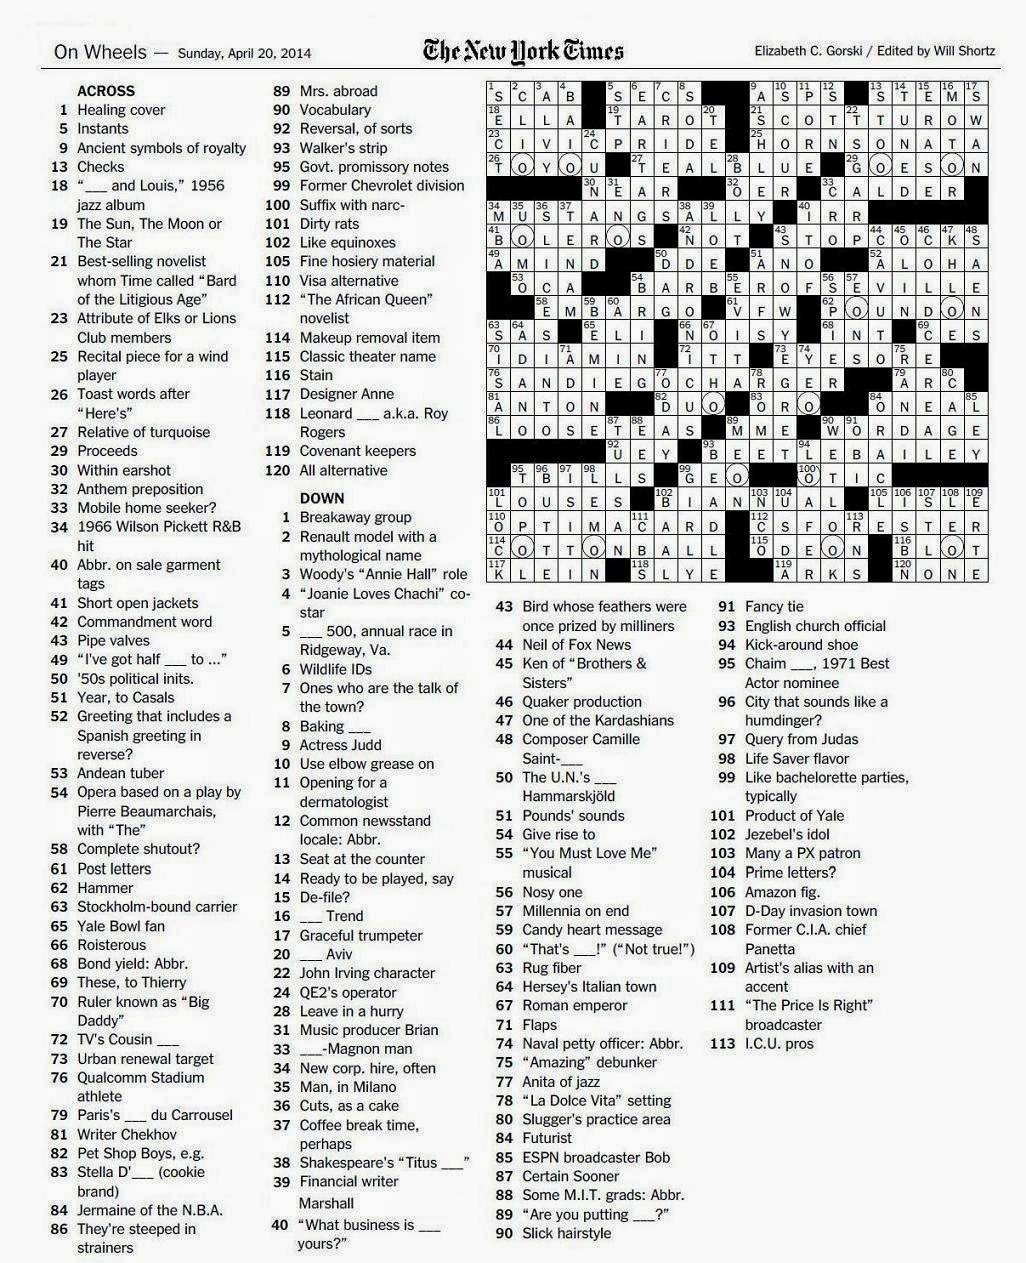 photo about New York Times Crossword Printable named Cost-free printable Fresh new york Periods sunday Crossword puzzles